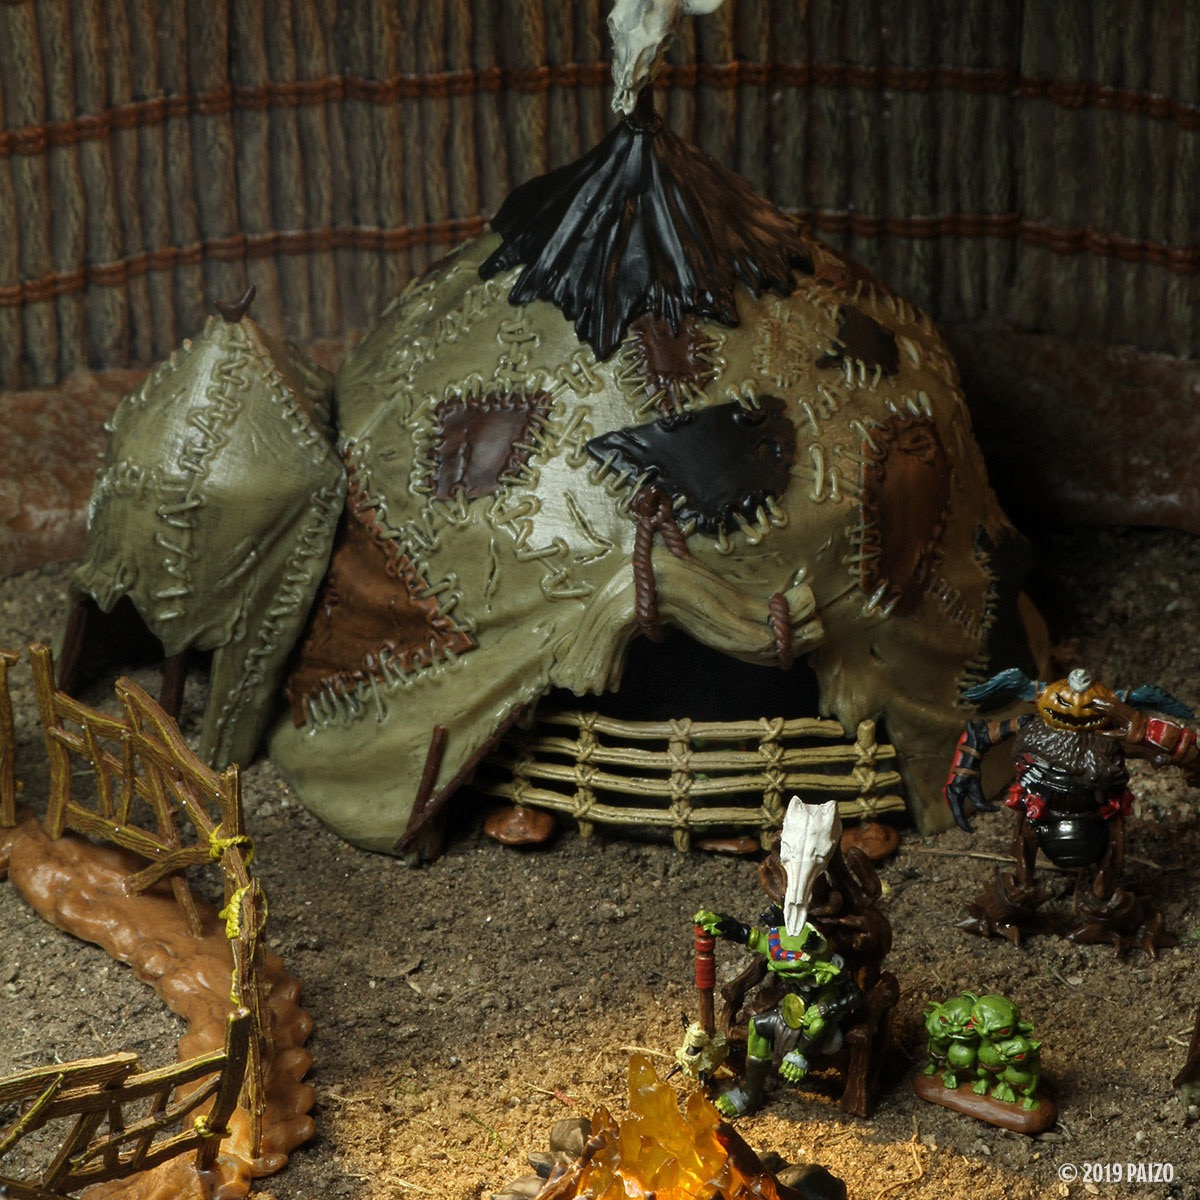 A closeup of a goblin village, focused on a large goblin tent with a gate across the opening.